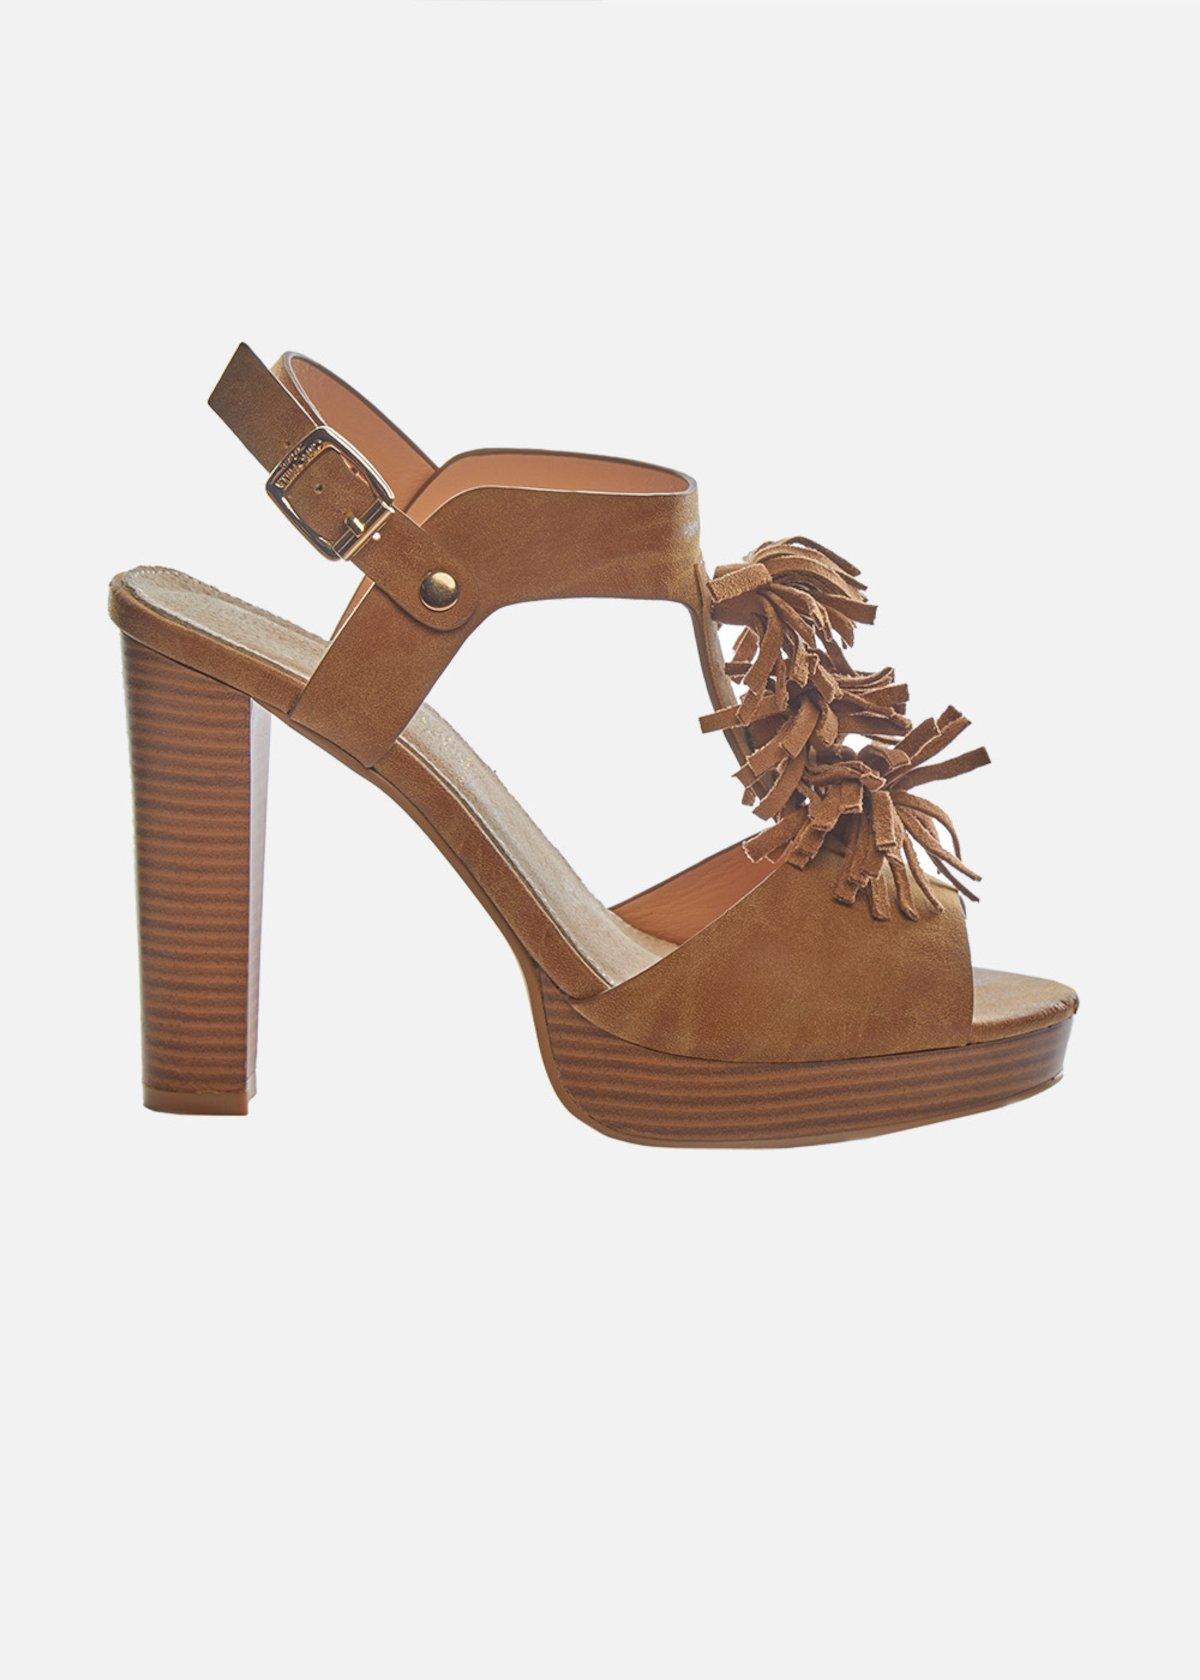 High heel Sandals Santania with fringe detail - Toffee